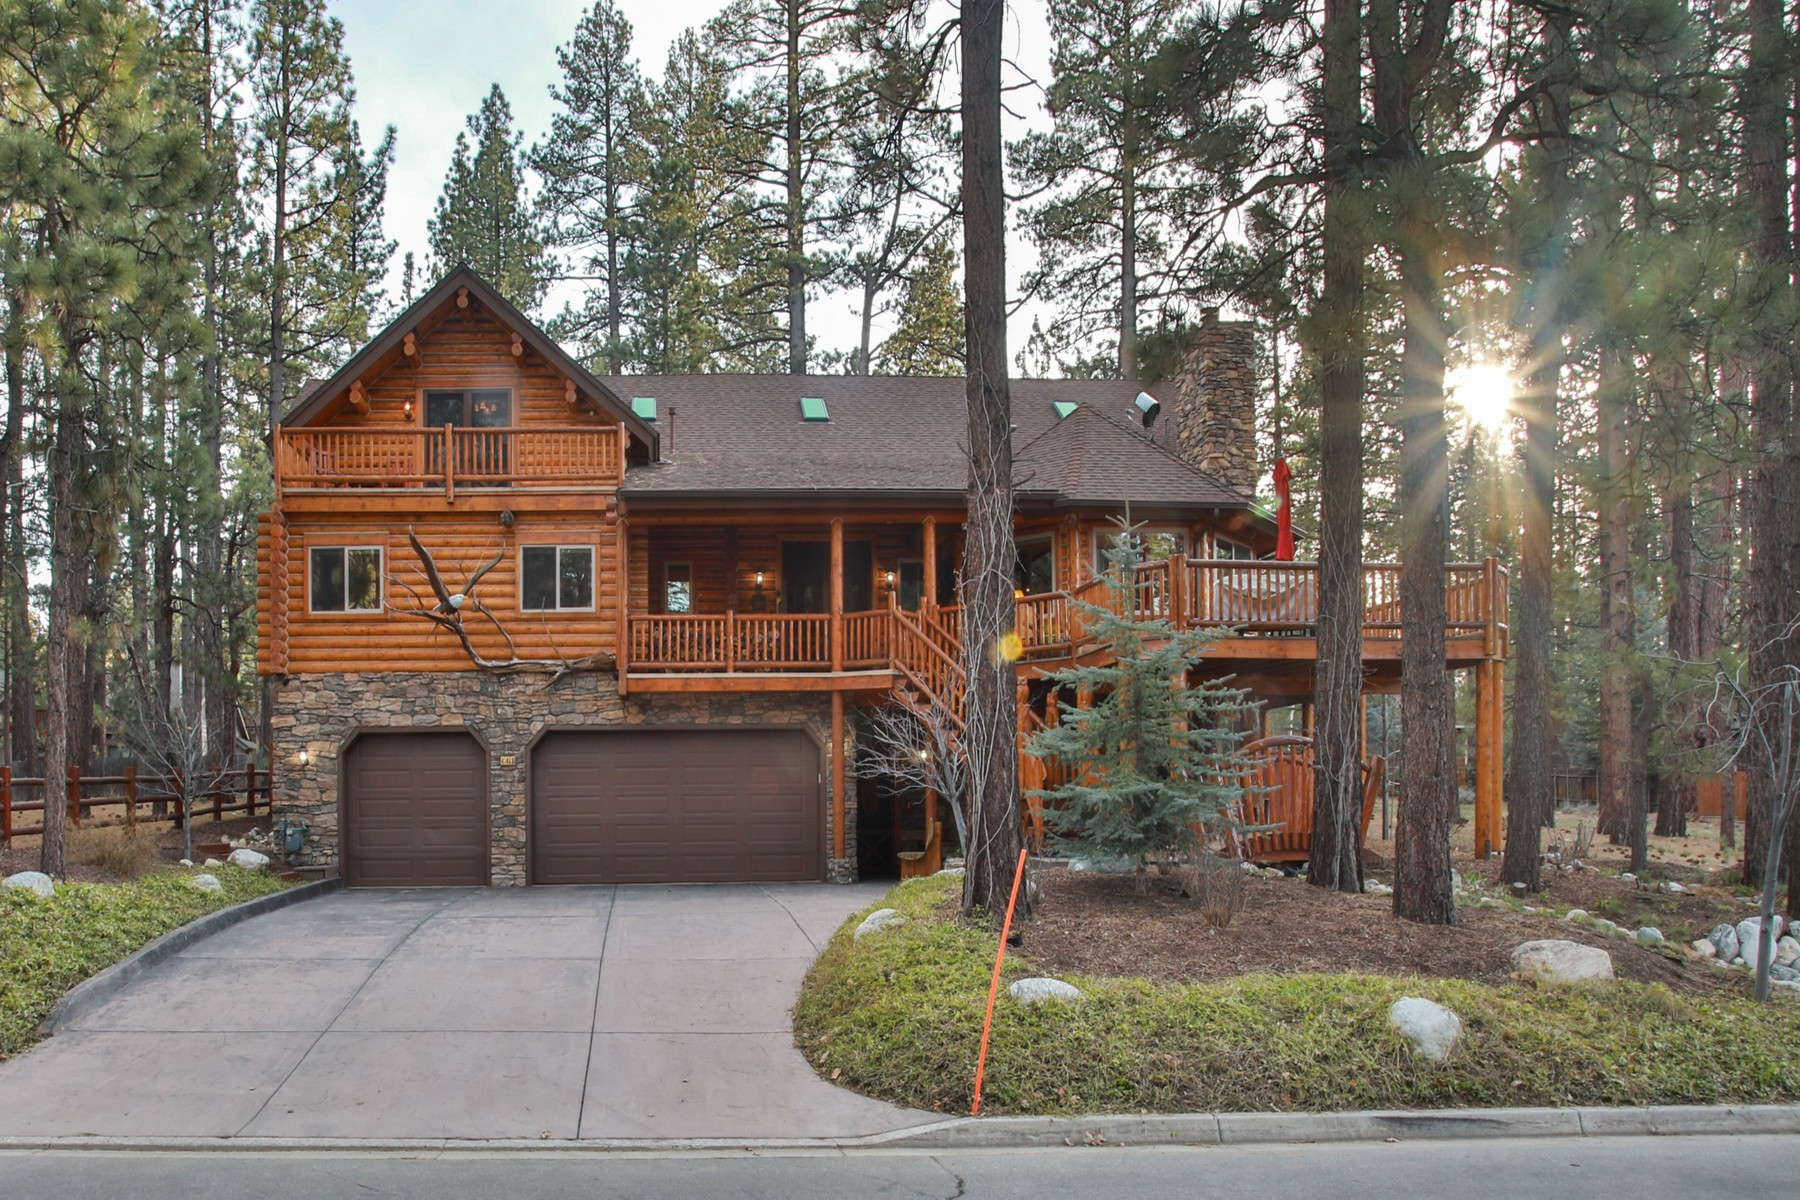 Single Family Homes for Sale at 41469 Stone Bridge Road Big Bear Lake, CA 92315 41469 Stone Bridge Road Big Bear Lake, California 92315 United States